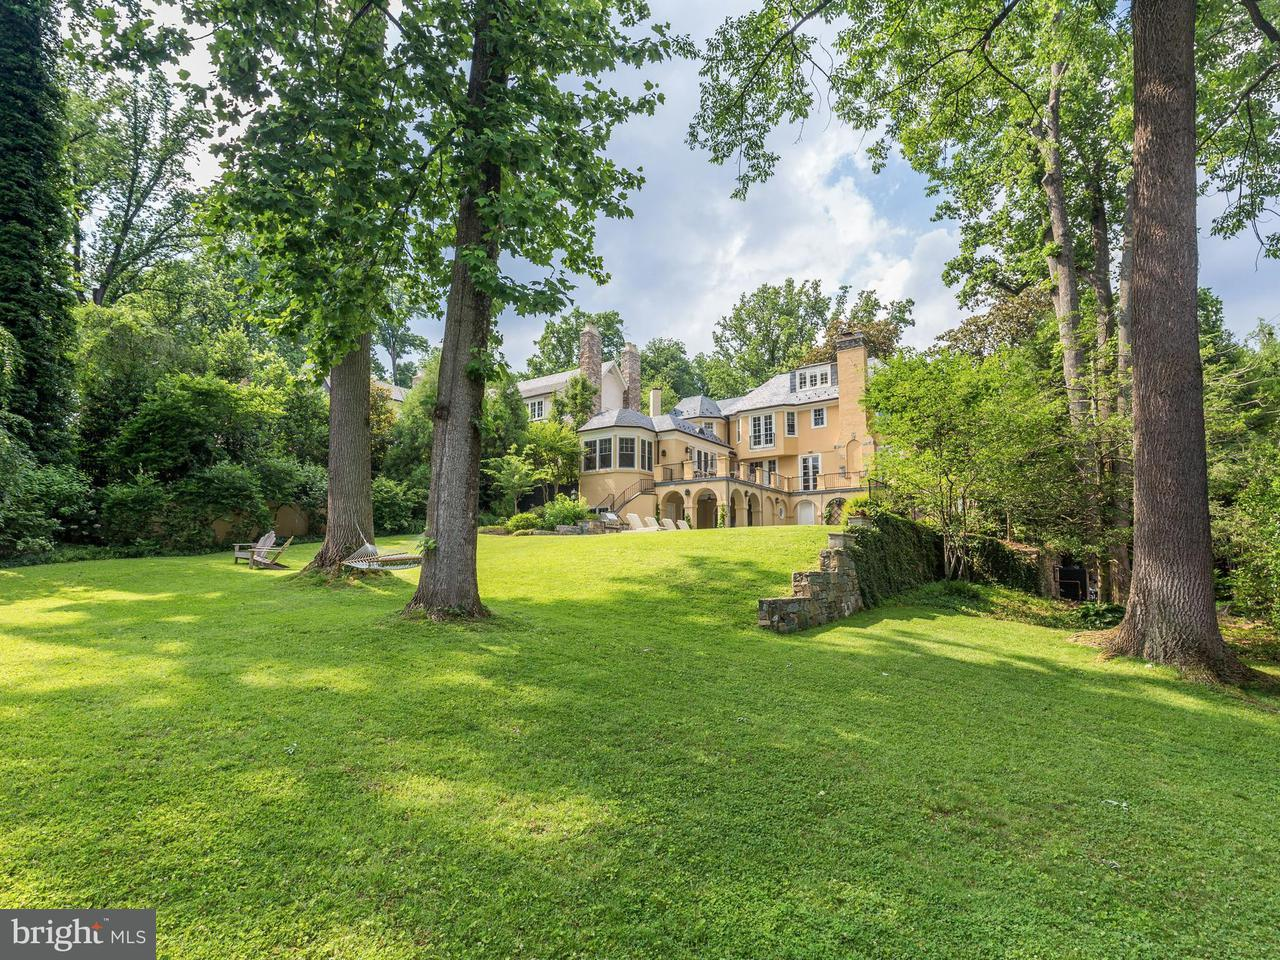 Additional photo for property listing at 4524 Cathedral Ave Nw 4524 Cathedral Ave Nw Washington, District De Columbia 20016 États-Unis